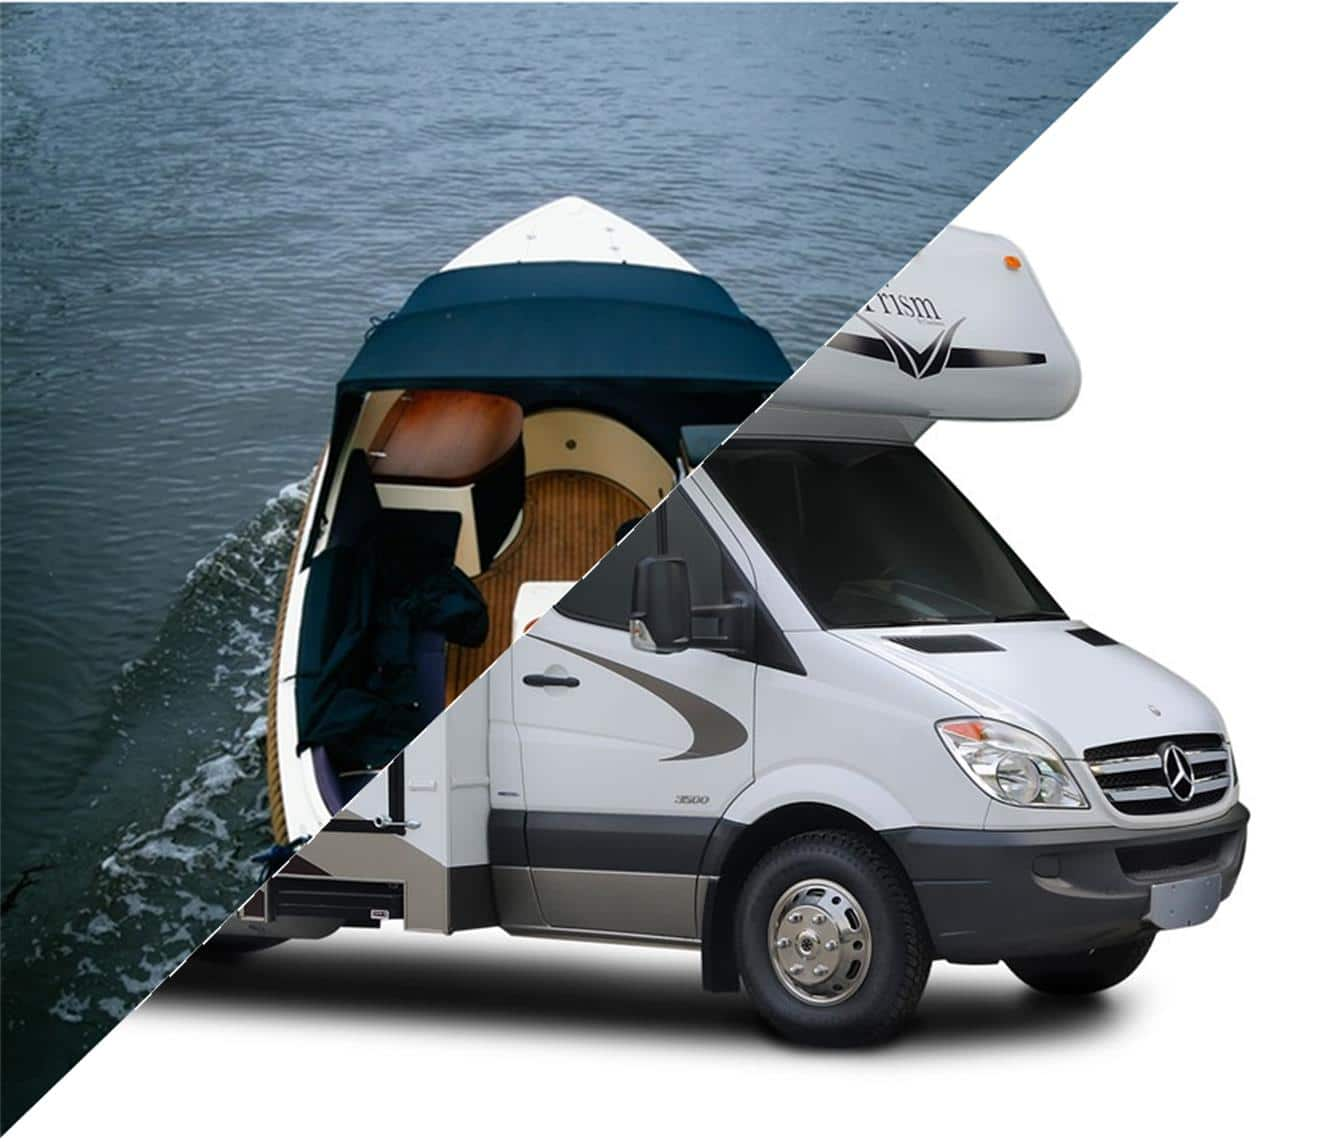 Boat and RV